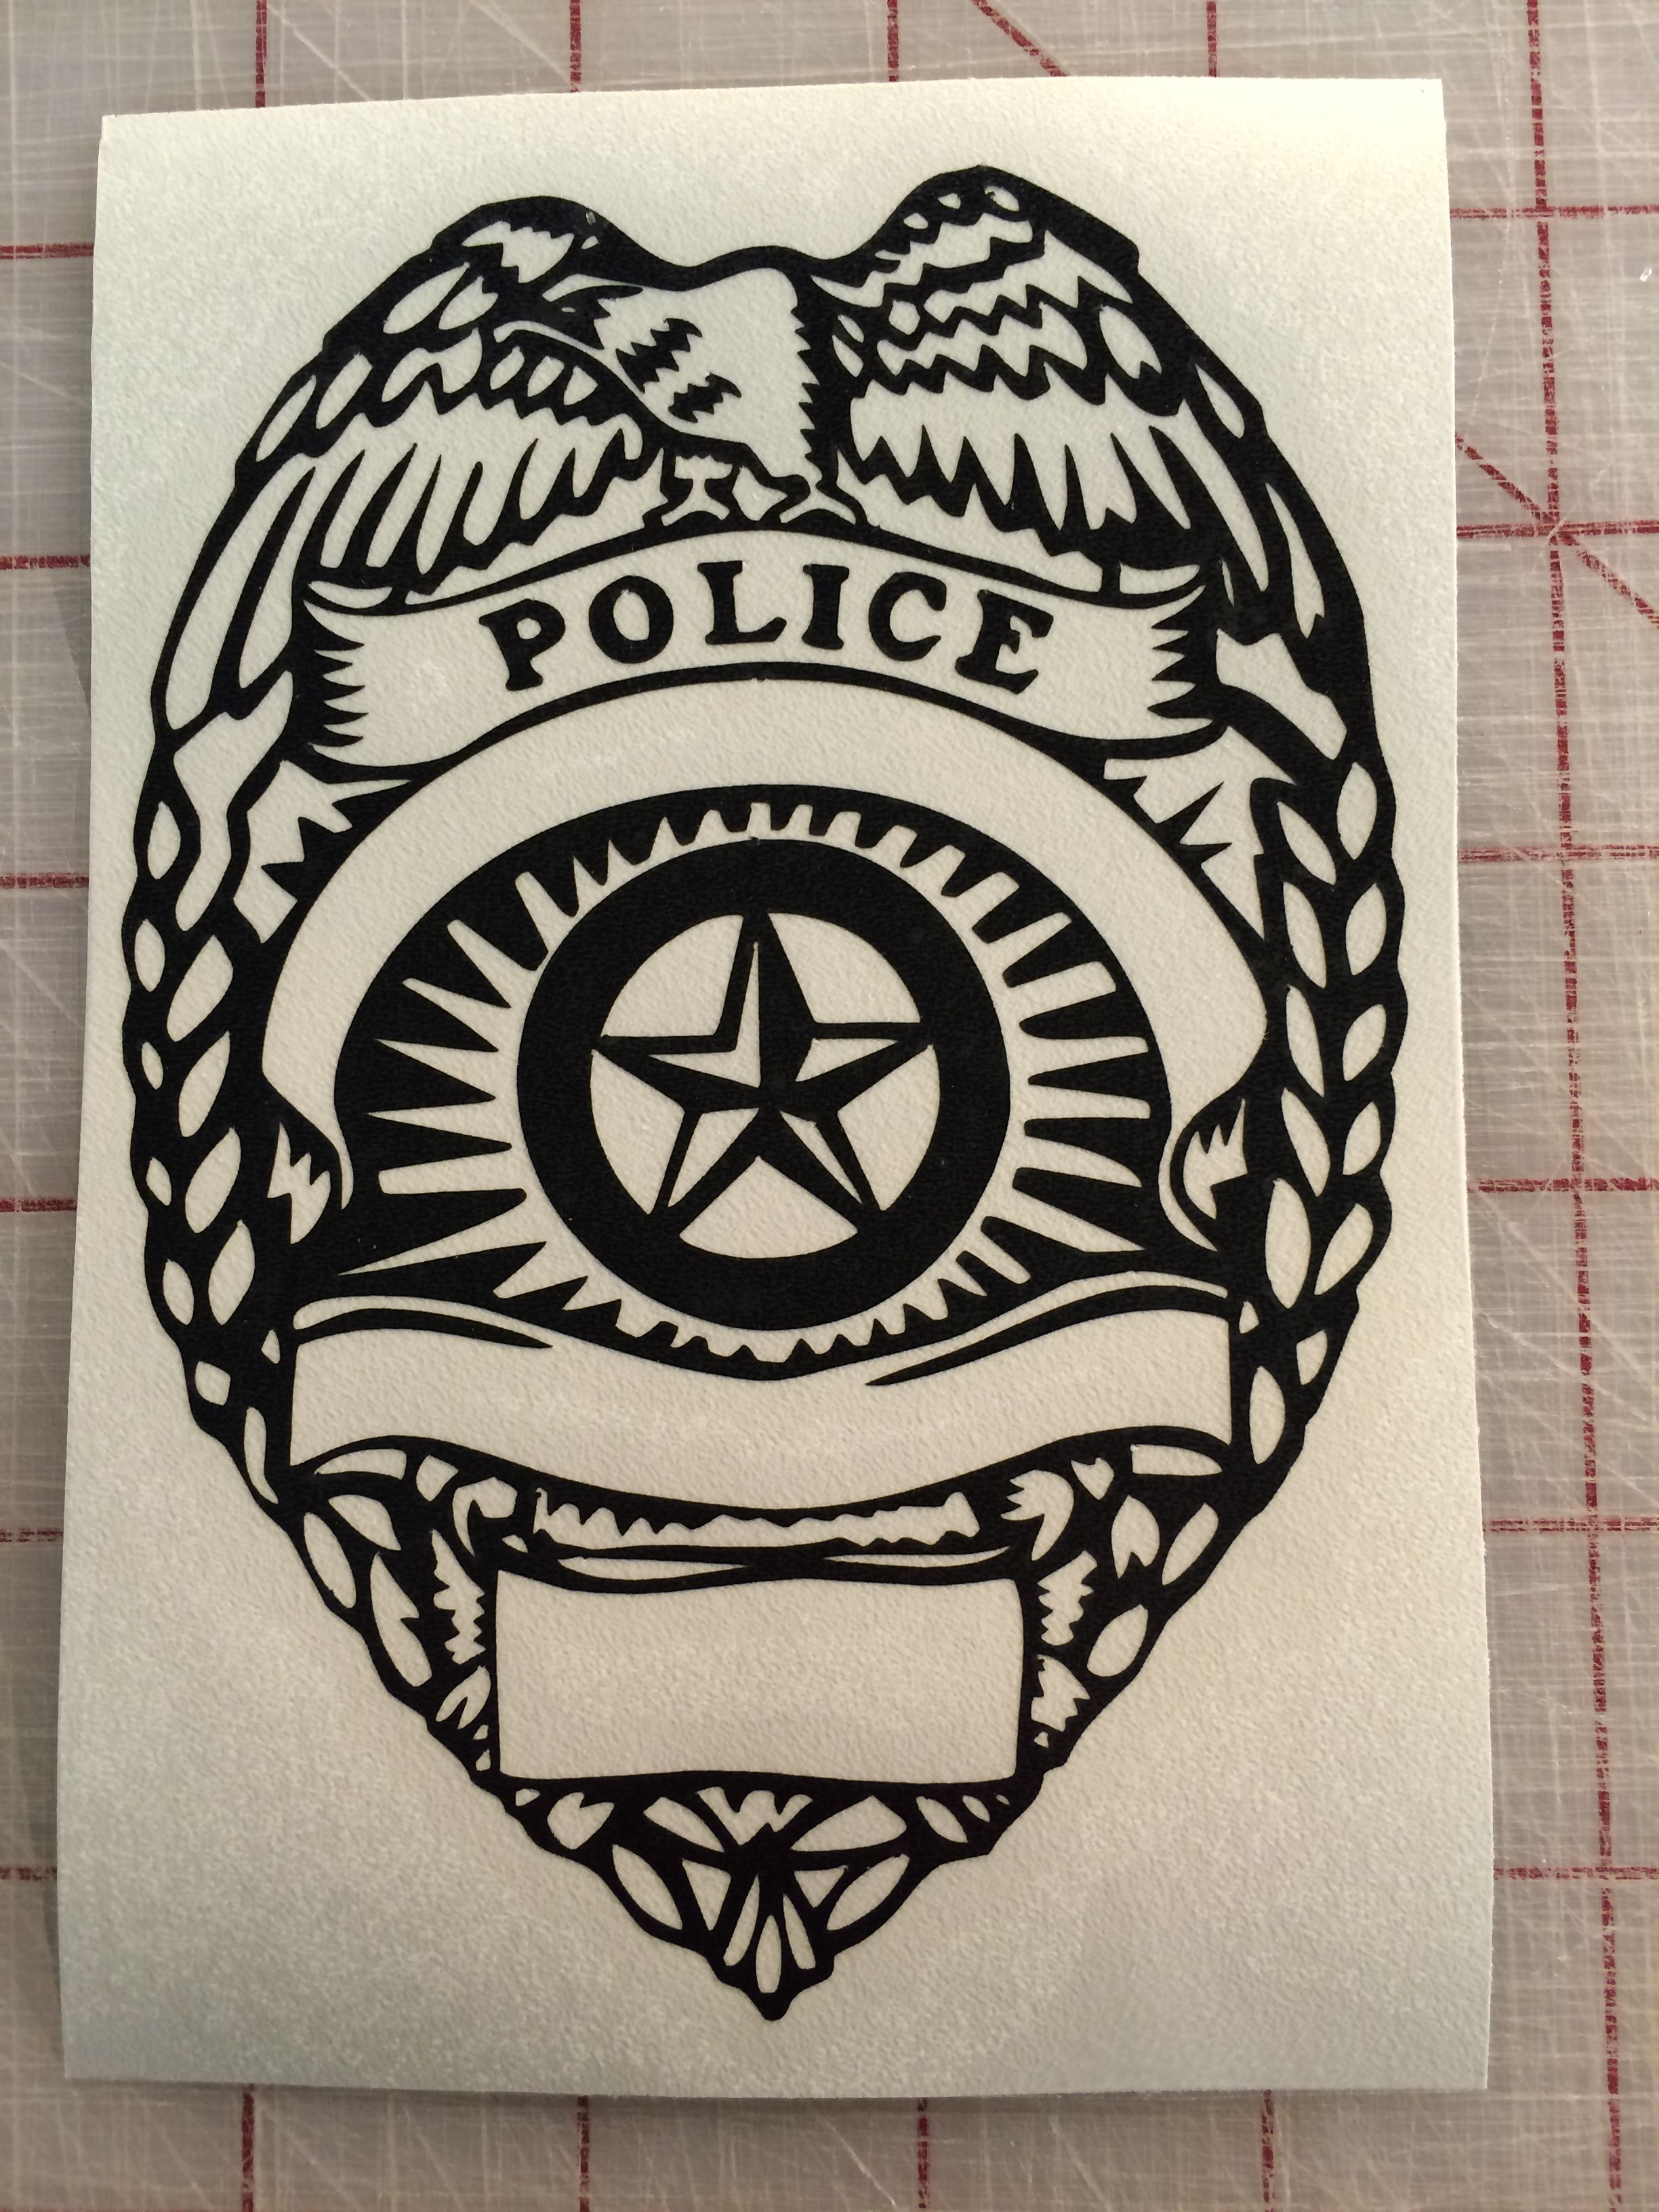 Police Decal Just made.. Burlap art, Police decal